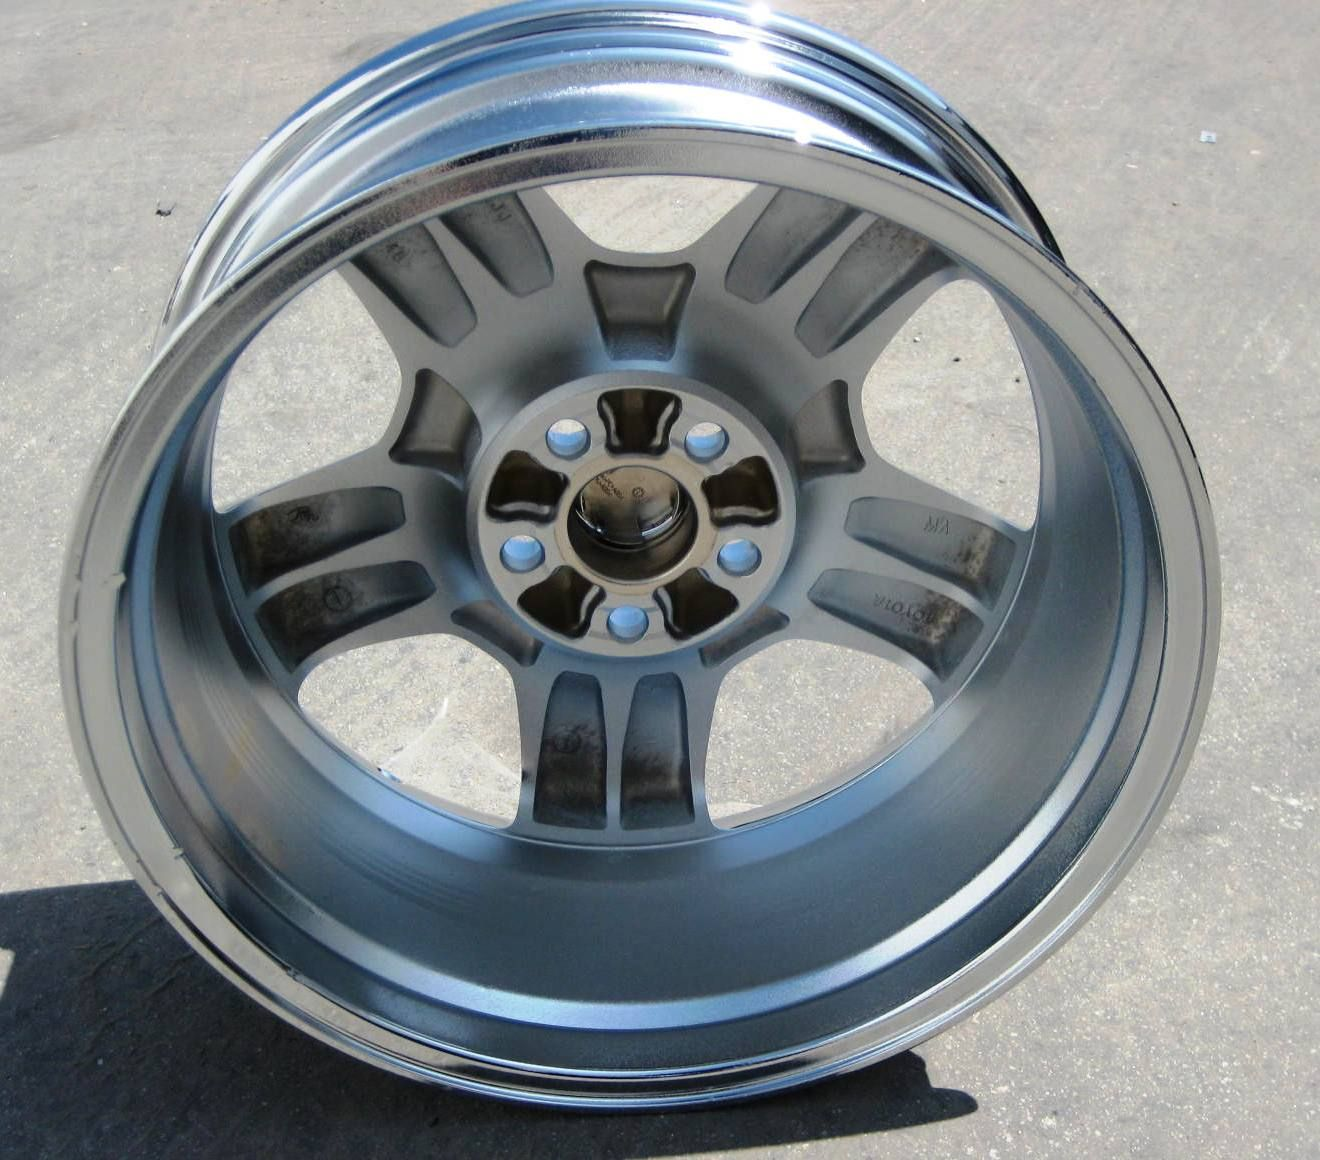 FACTORY LEXUS LS430 OEM CHROME WHEELS RIMS GS430 LS400 GS350 SET OF 4